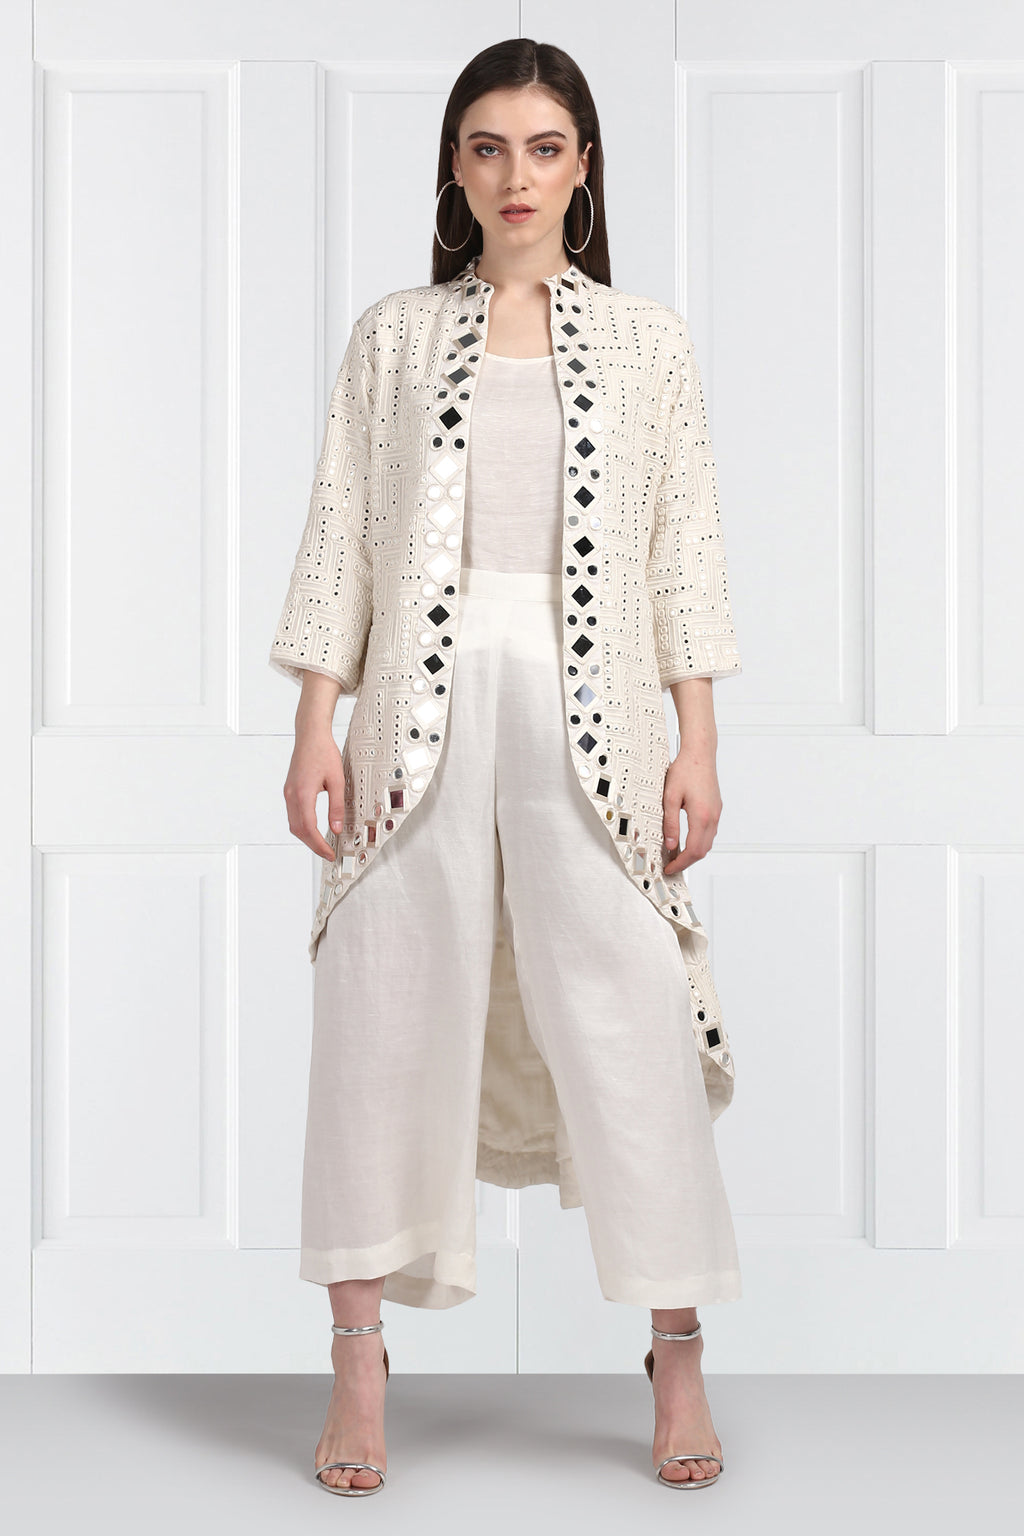 White Mirrorwork Long Asymmetrical  Jacket With Sleeves